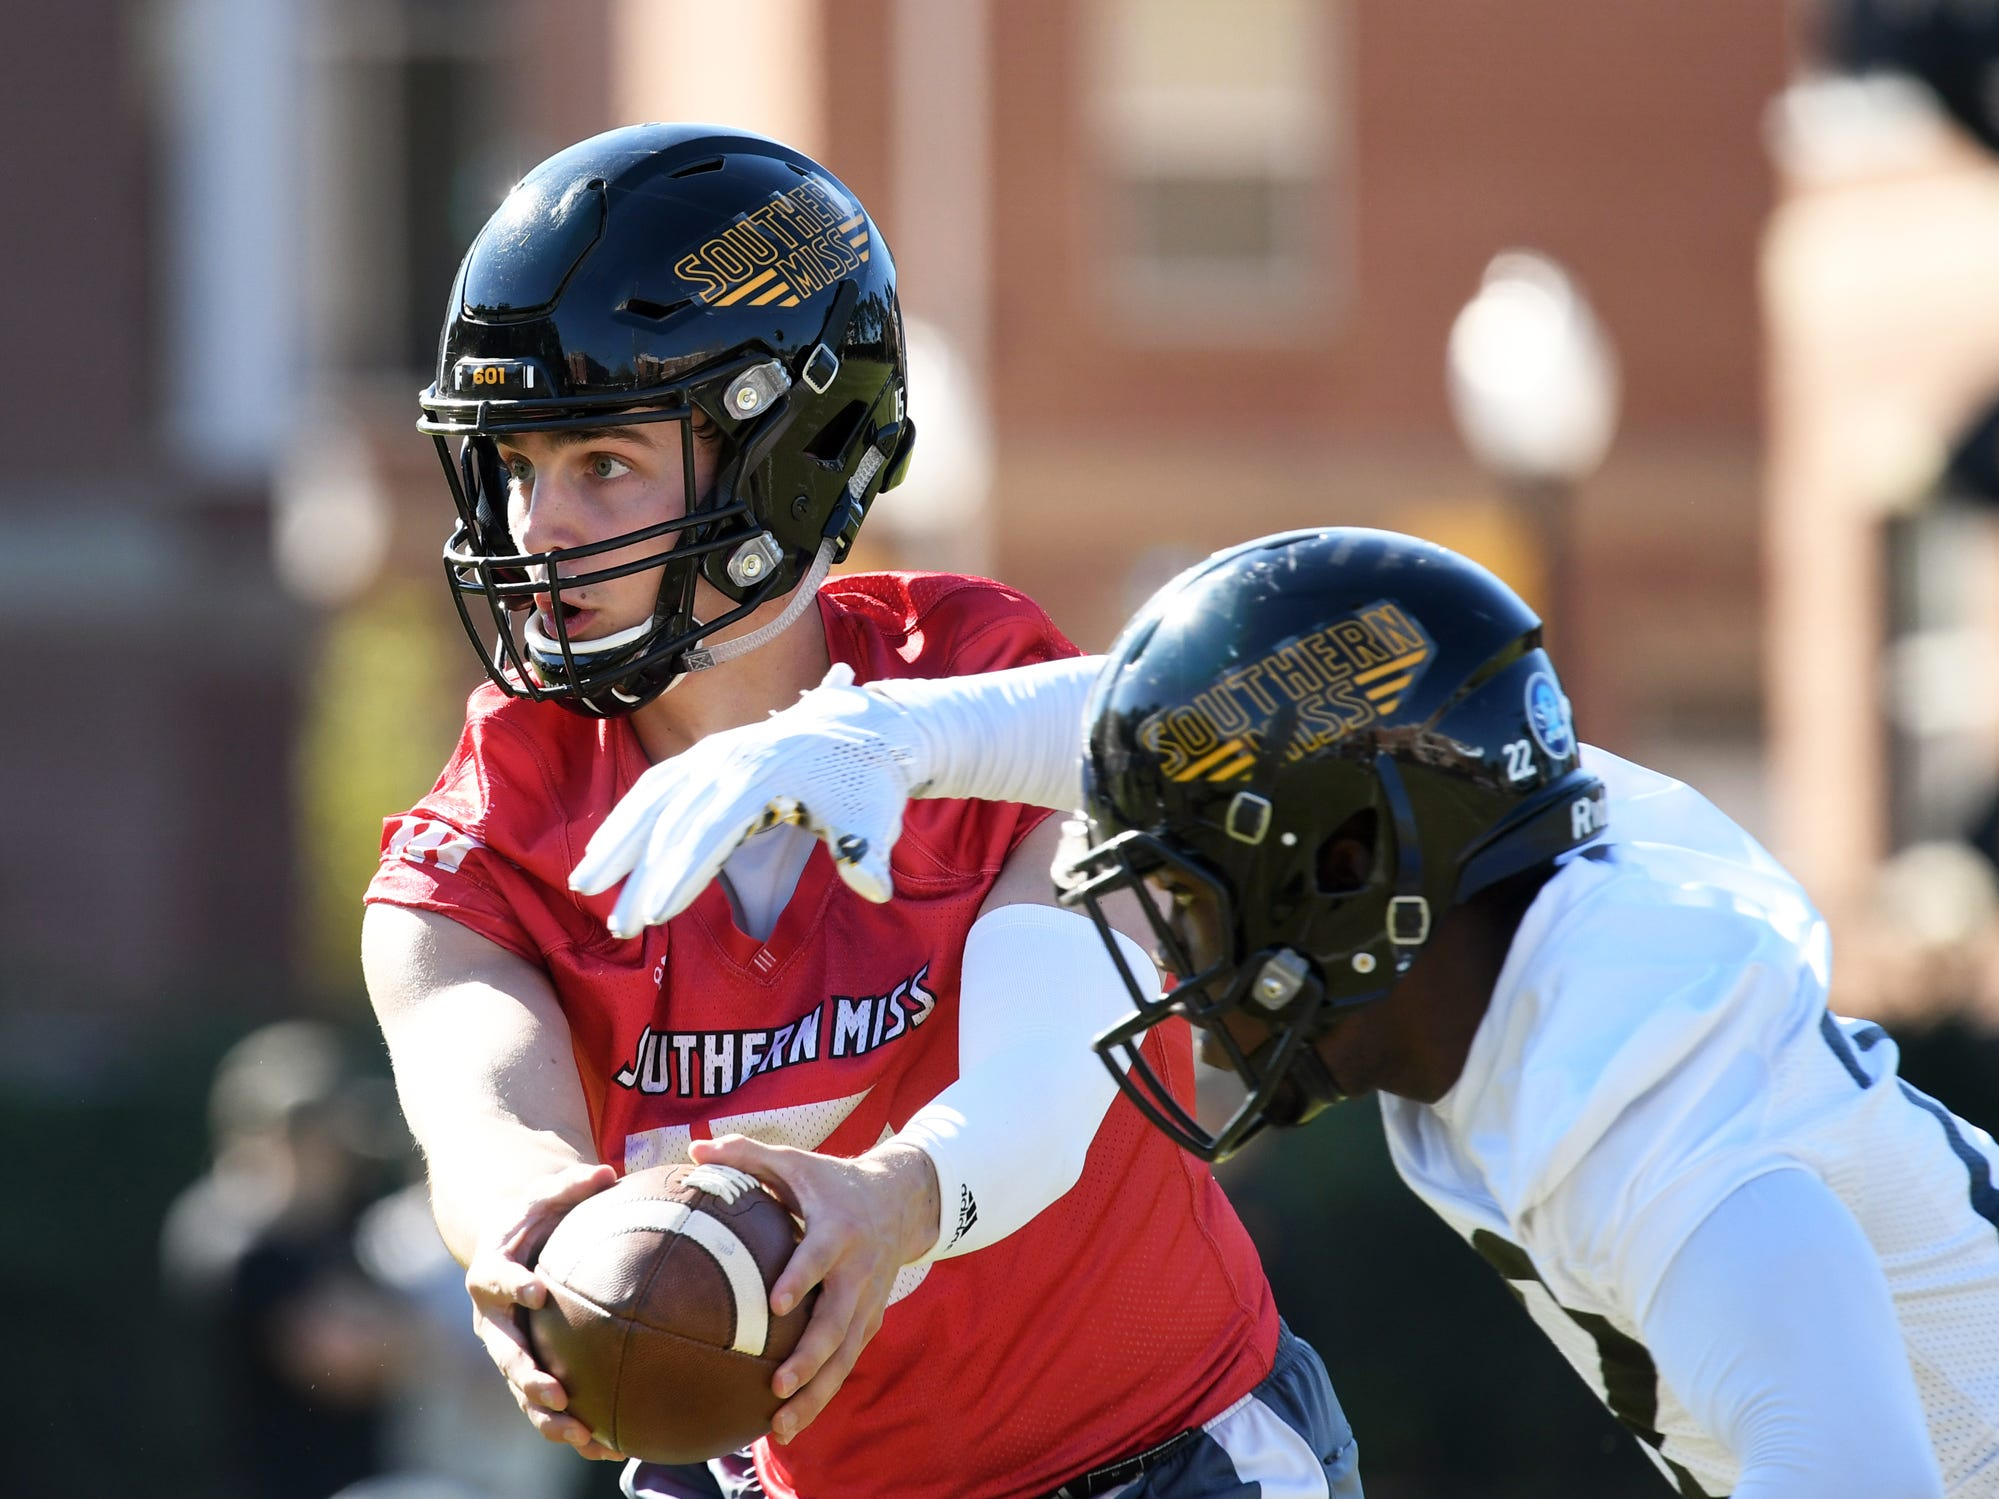 Southern Miss quarterback Jack Abraham hands the ball to running back Trivenskey Mosley during the first day of spring practice in Hattiesburg on Tuesday, March 19, 2019.